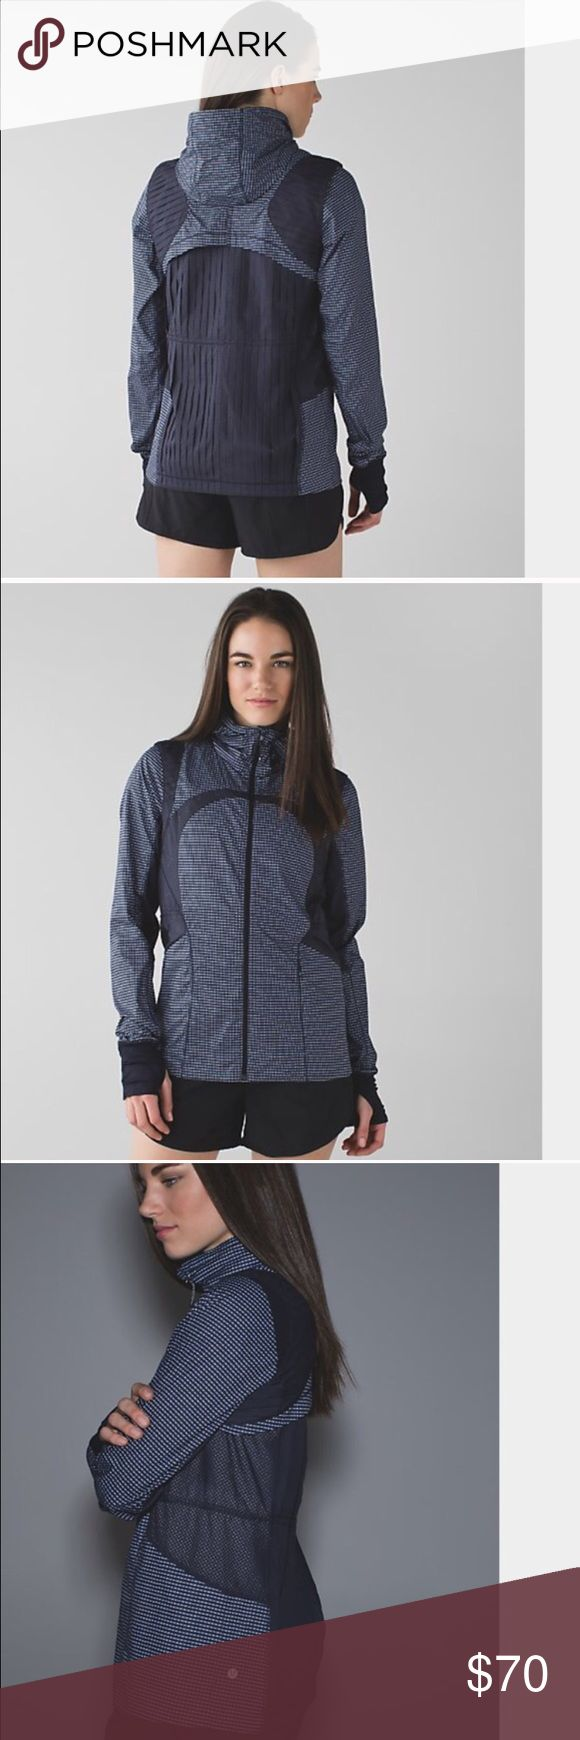 """Lululemon Jacket SIZE 6! """"Vent it out"""" jacket! Sold out in stores!! Bought from another posher, but was too small! It is SO cute! Navy, light blue, and white design! lululemon athletica Jackets & Coats"""